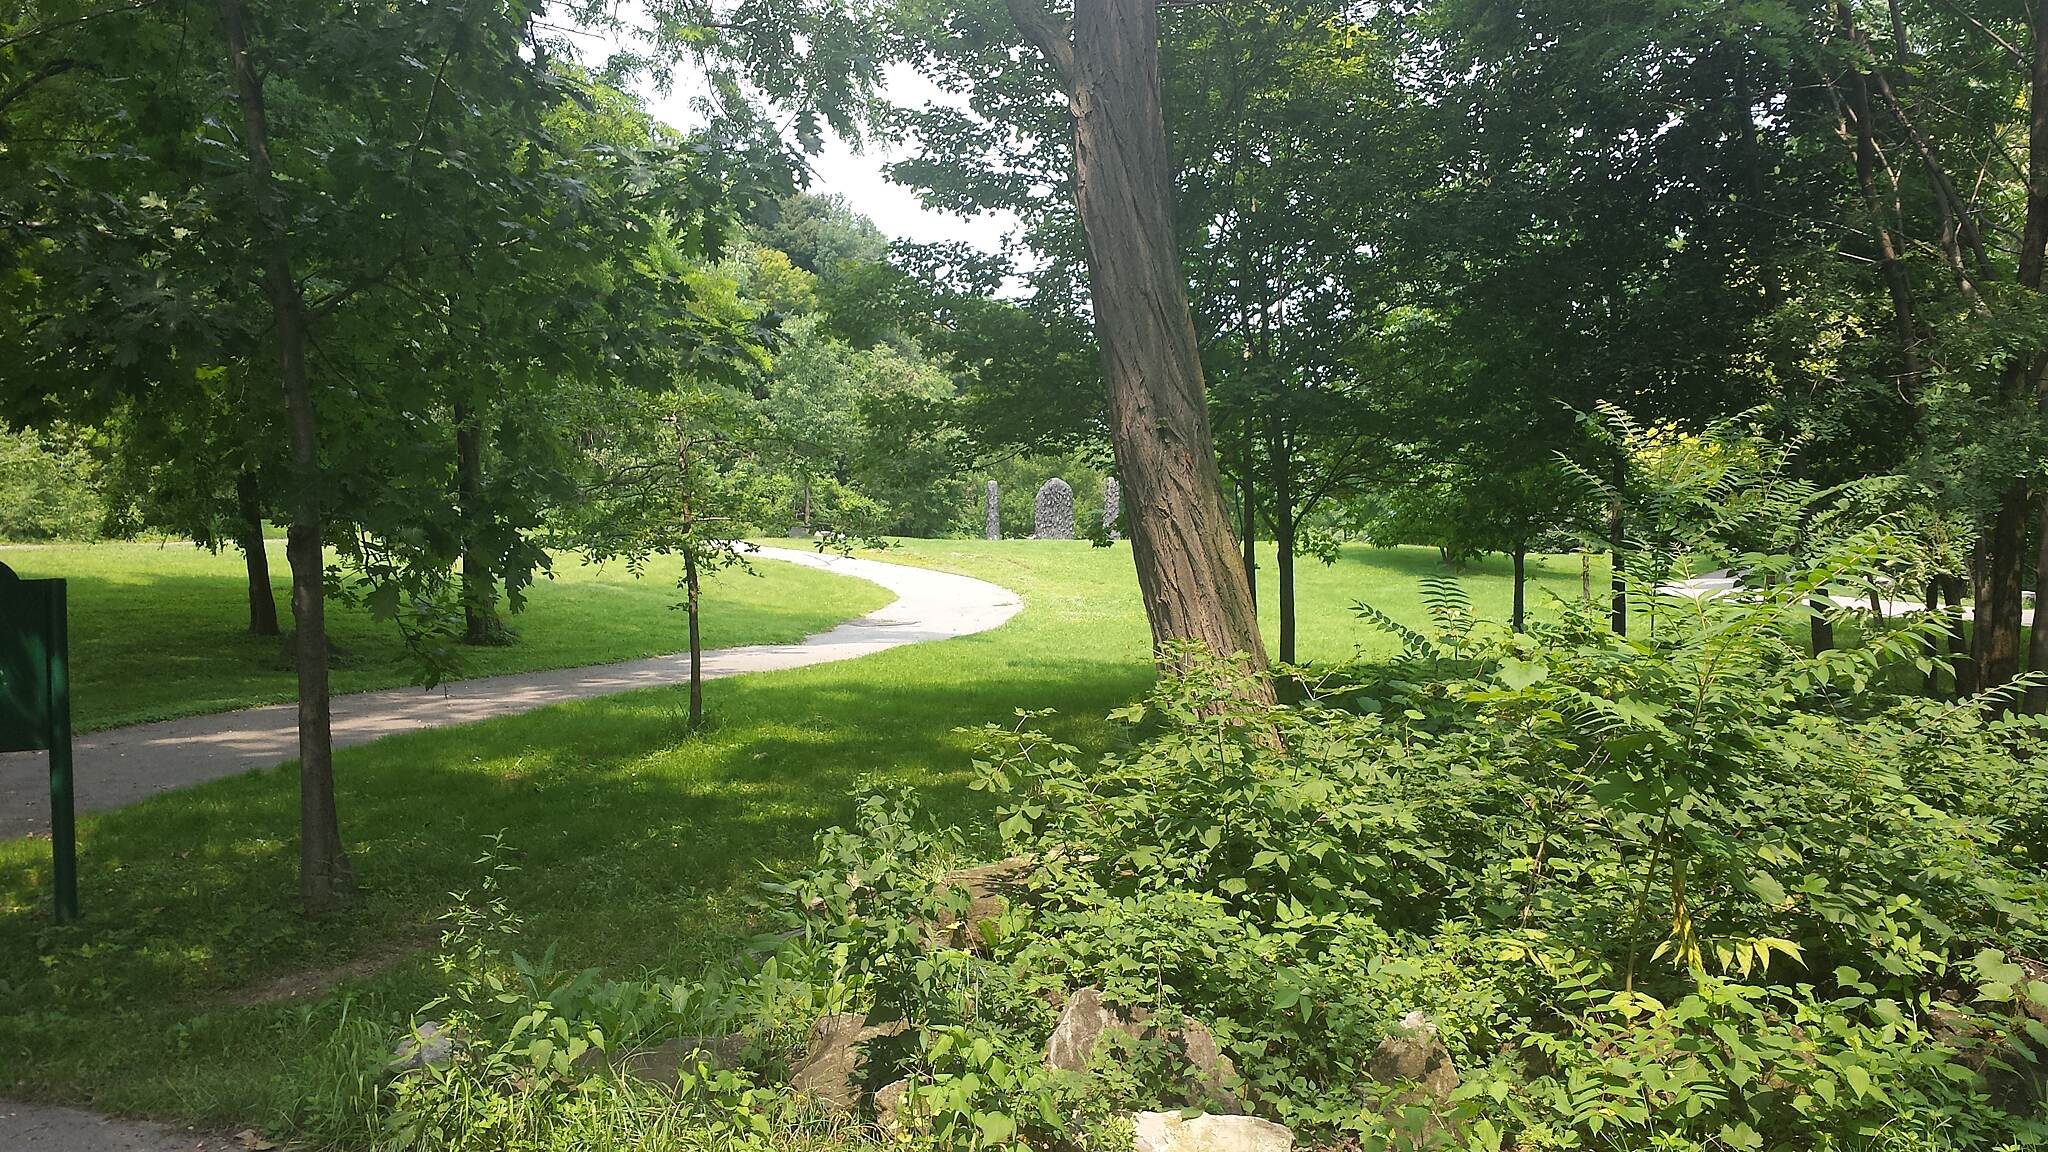 Genesee Riverway Trail Park along the way